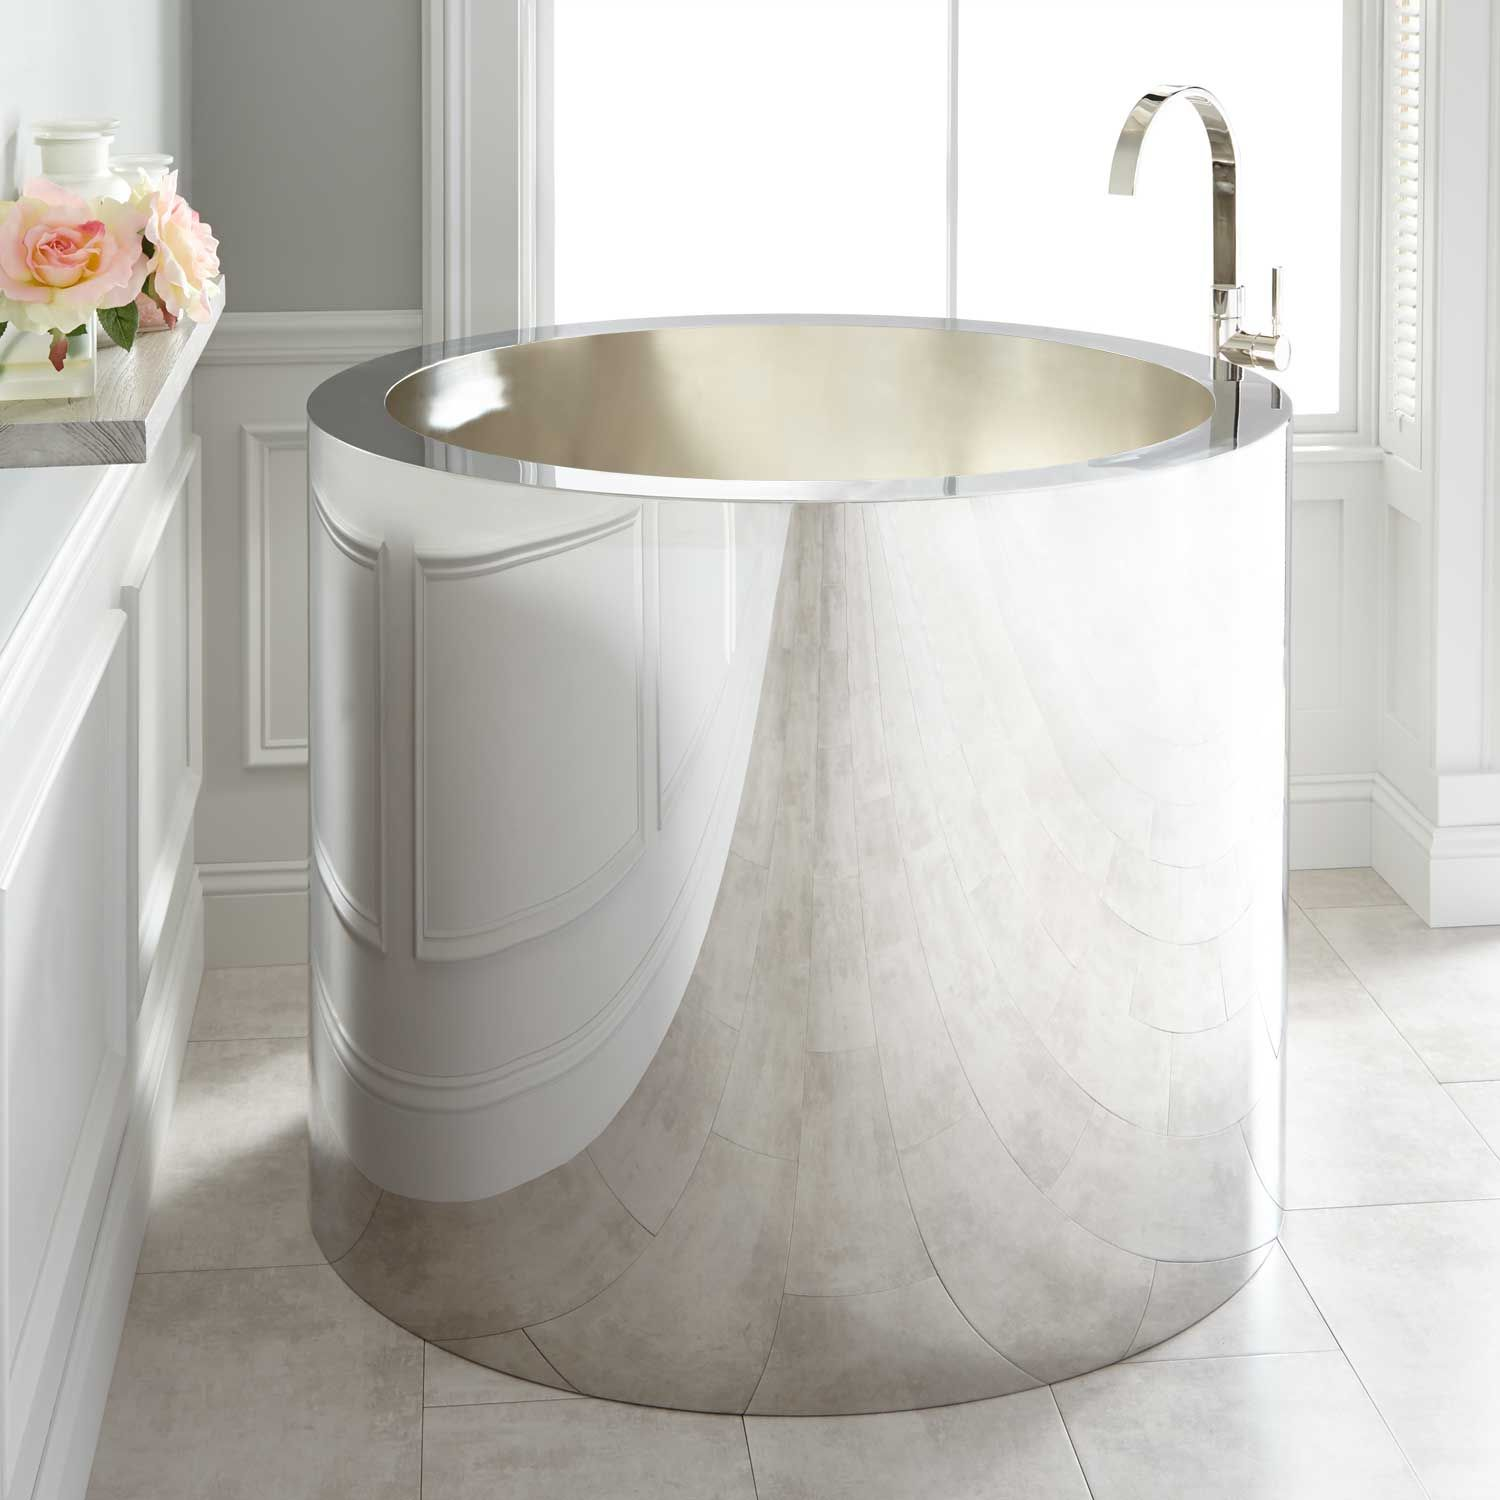 43 Simone Polished Stainless Steel Soaking Tub - Brushed Interior